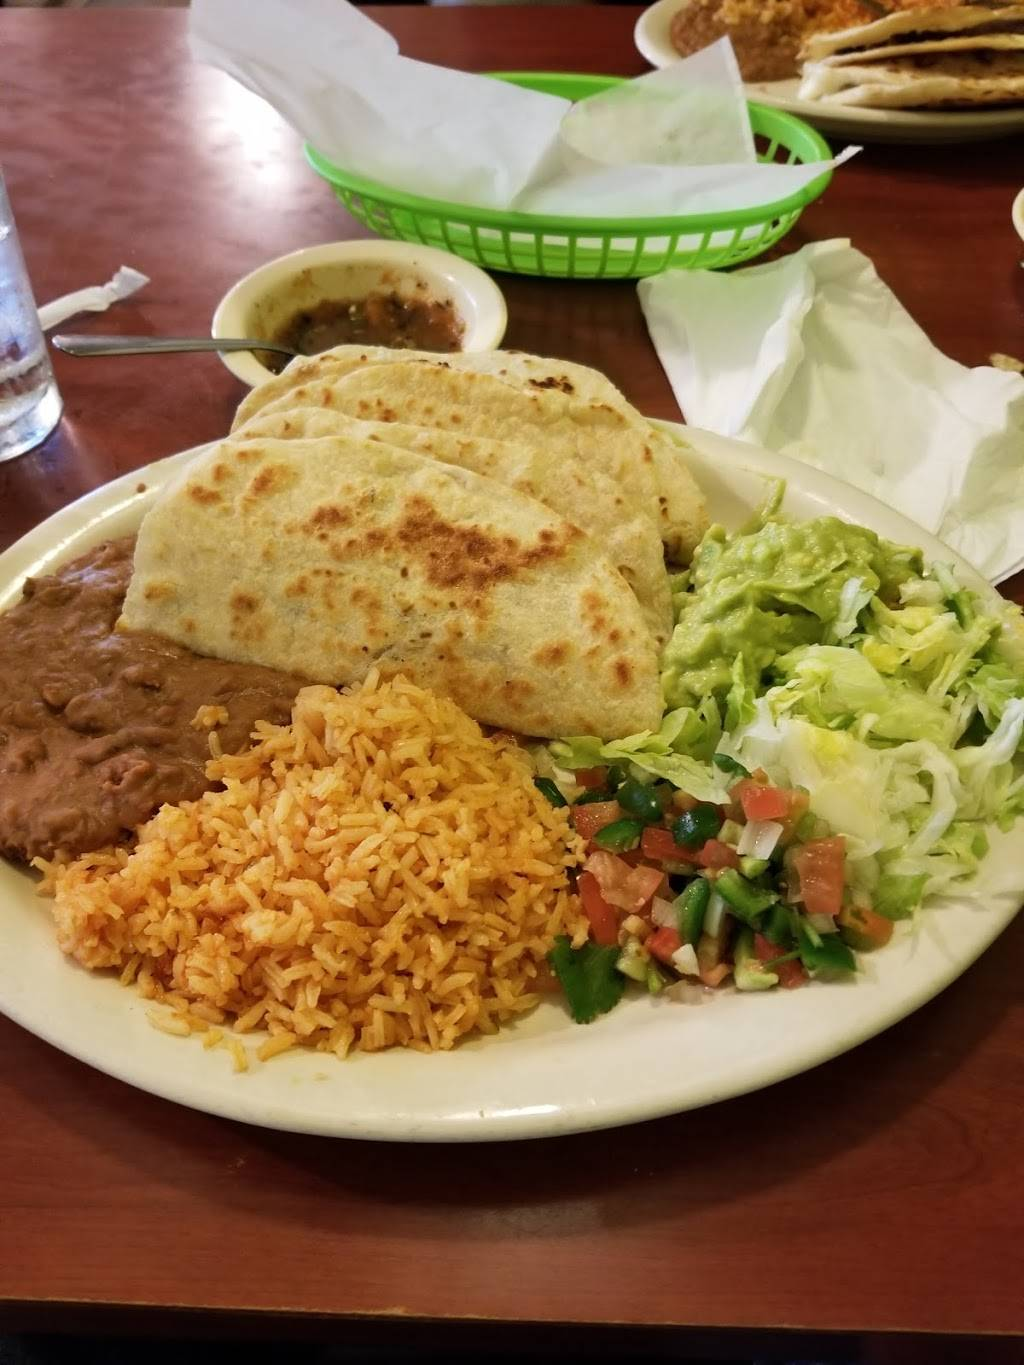 Trigos Mexican Restaurant | restaurant | 5902 Fulton St, Houston, TX 77009, USA | 7136922951 OR +1 713-692-2951